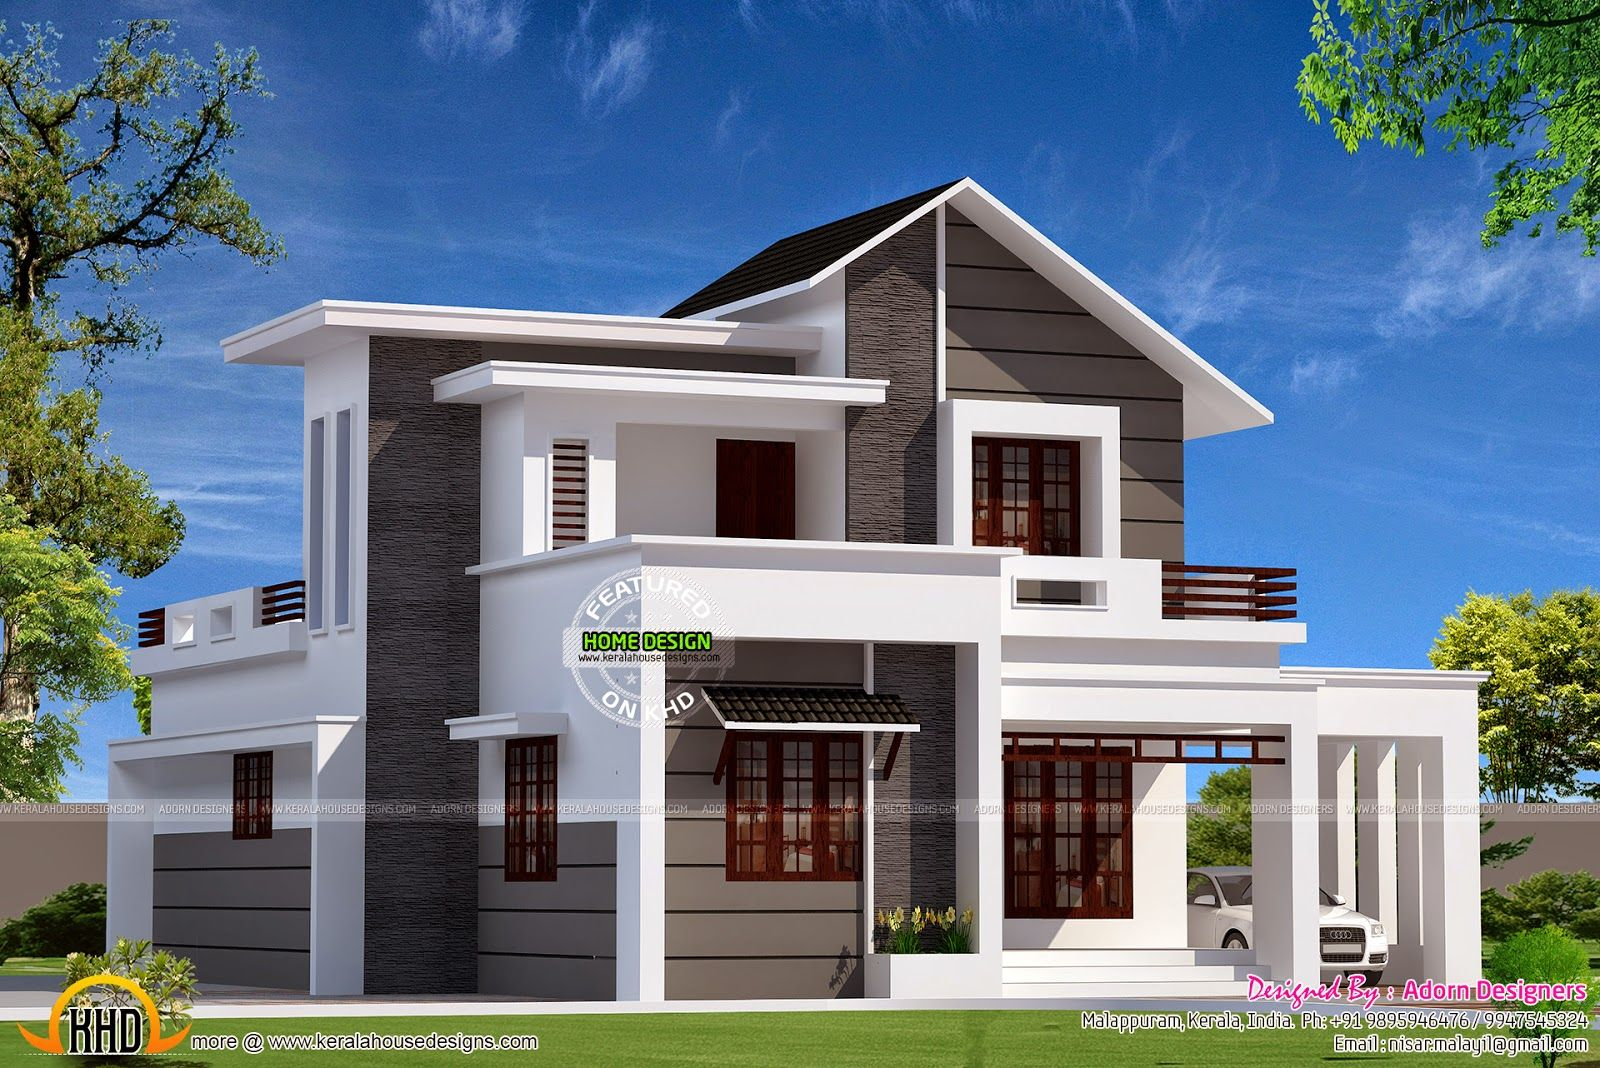 Contemporary Home Designs At Malappuram Part - 17: 1500-sq-ft-home.jpg (1600×1068)